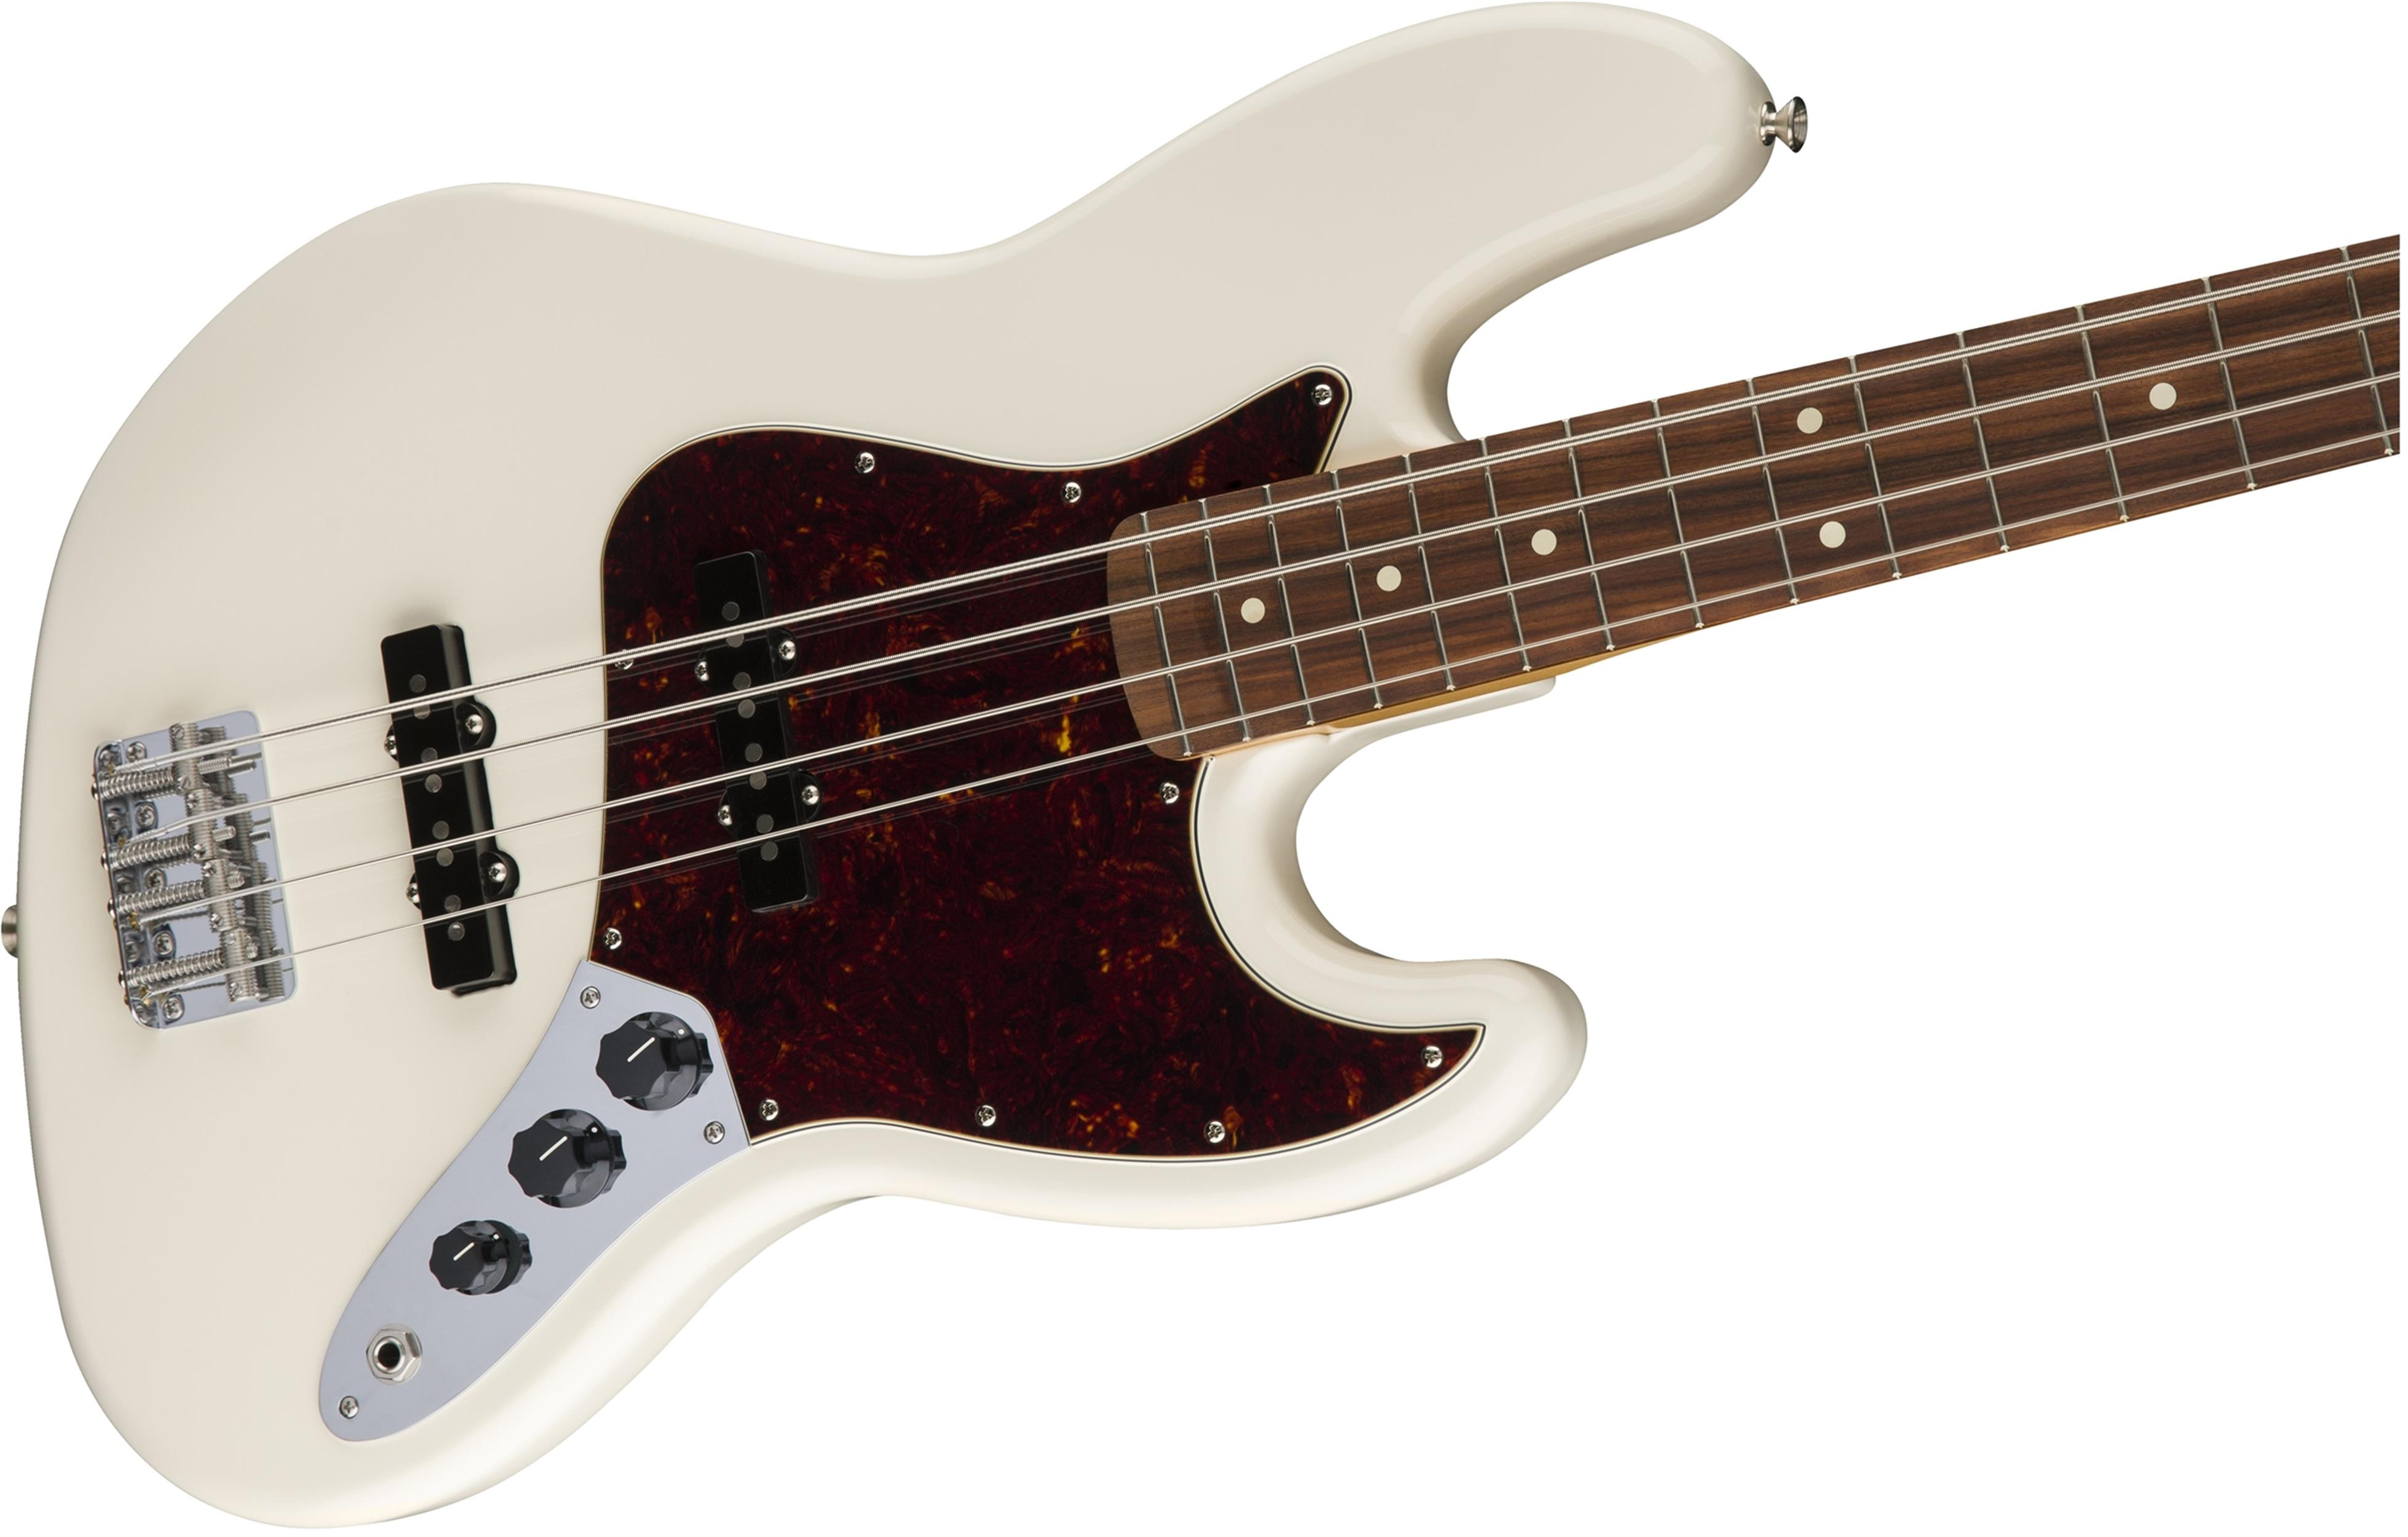 FENDER CLASSIC 60 JAZZ BASS OLYMPIC WHITE 0131803305